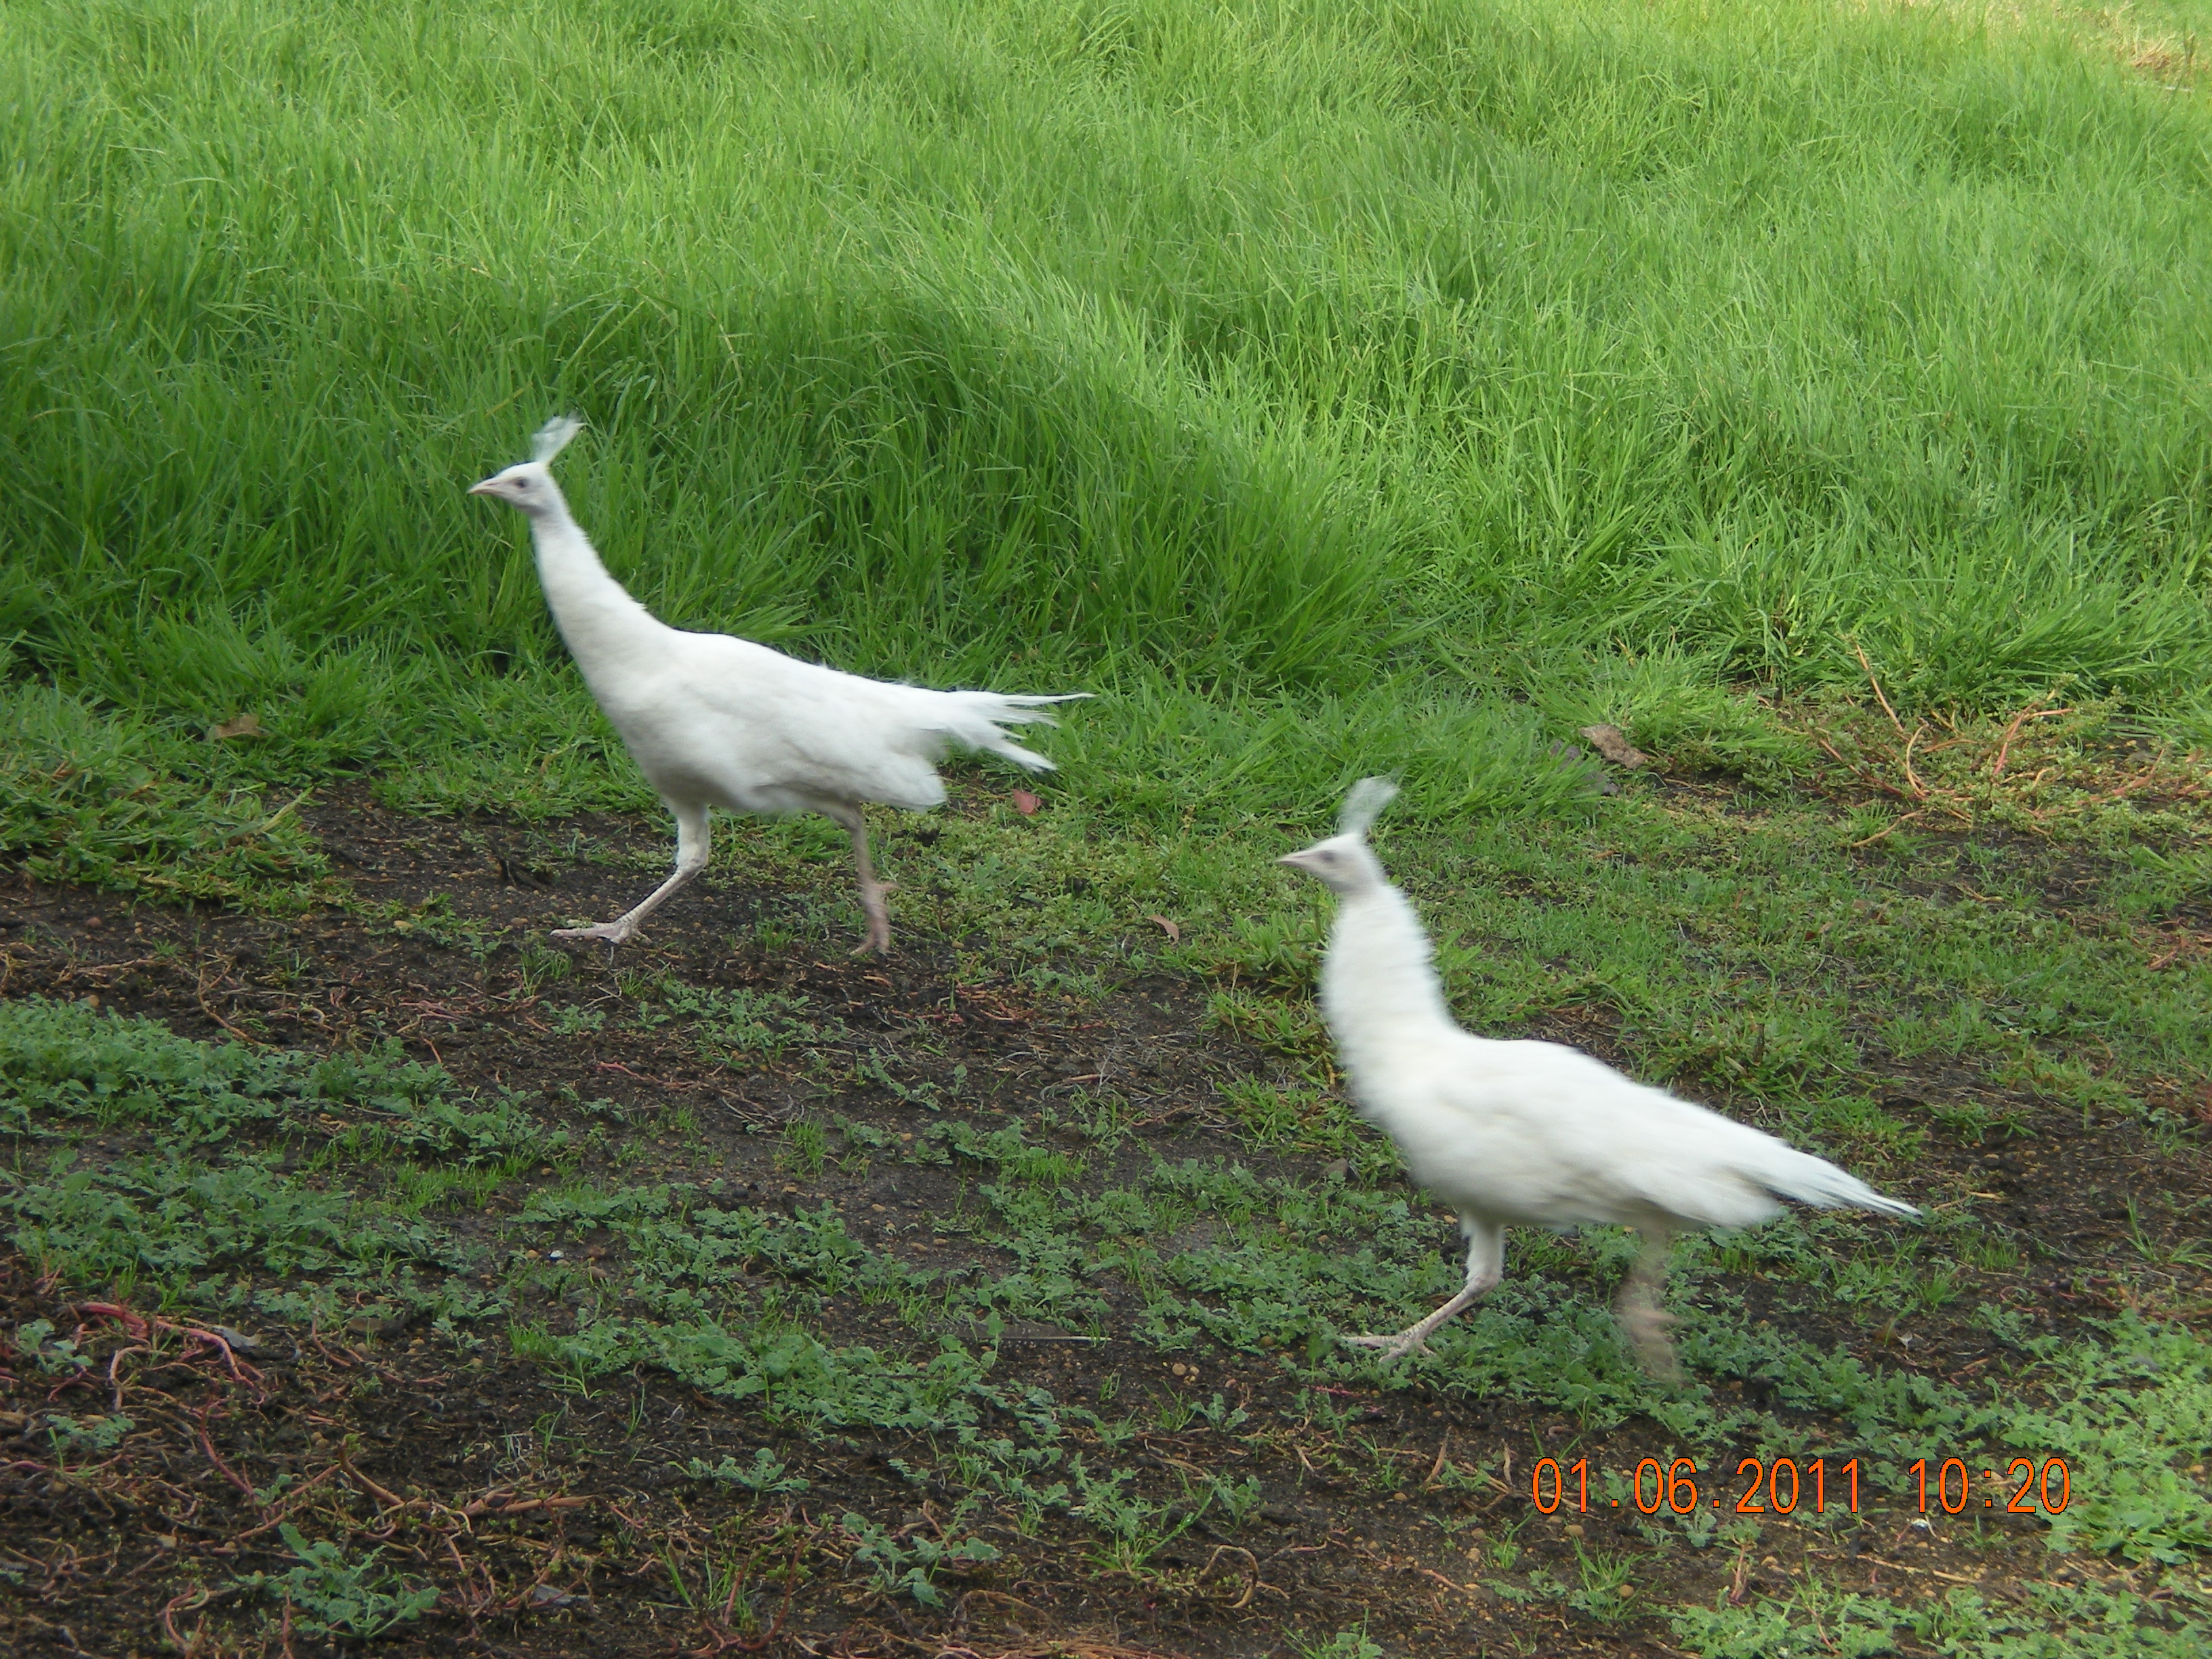 White female peacocks